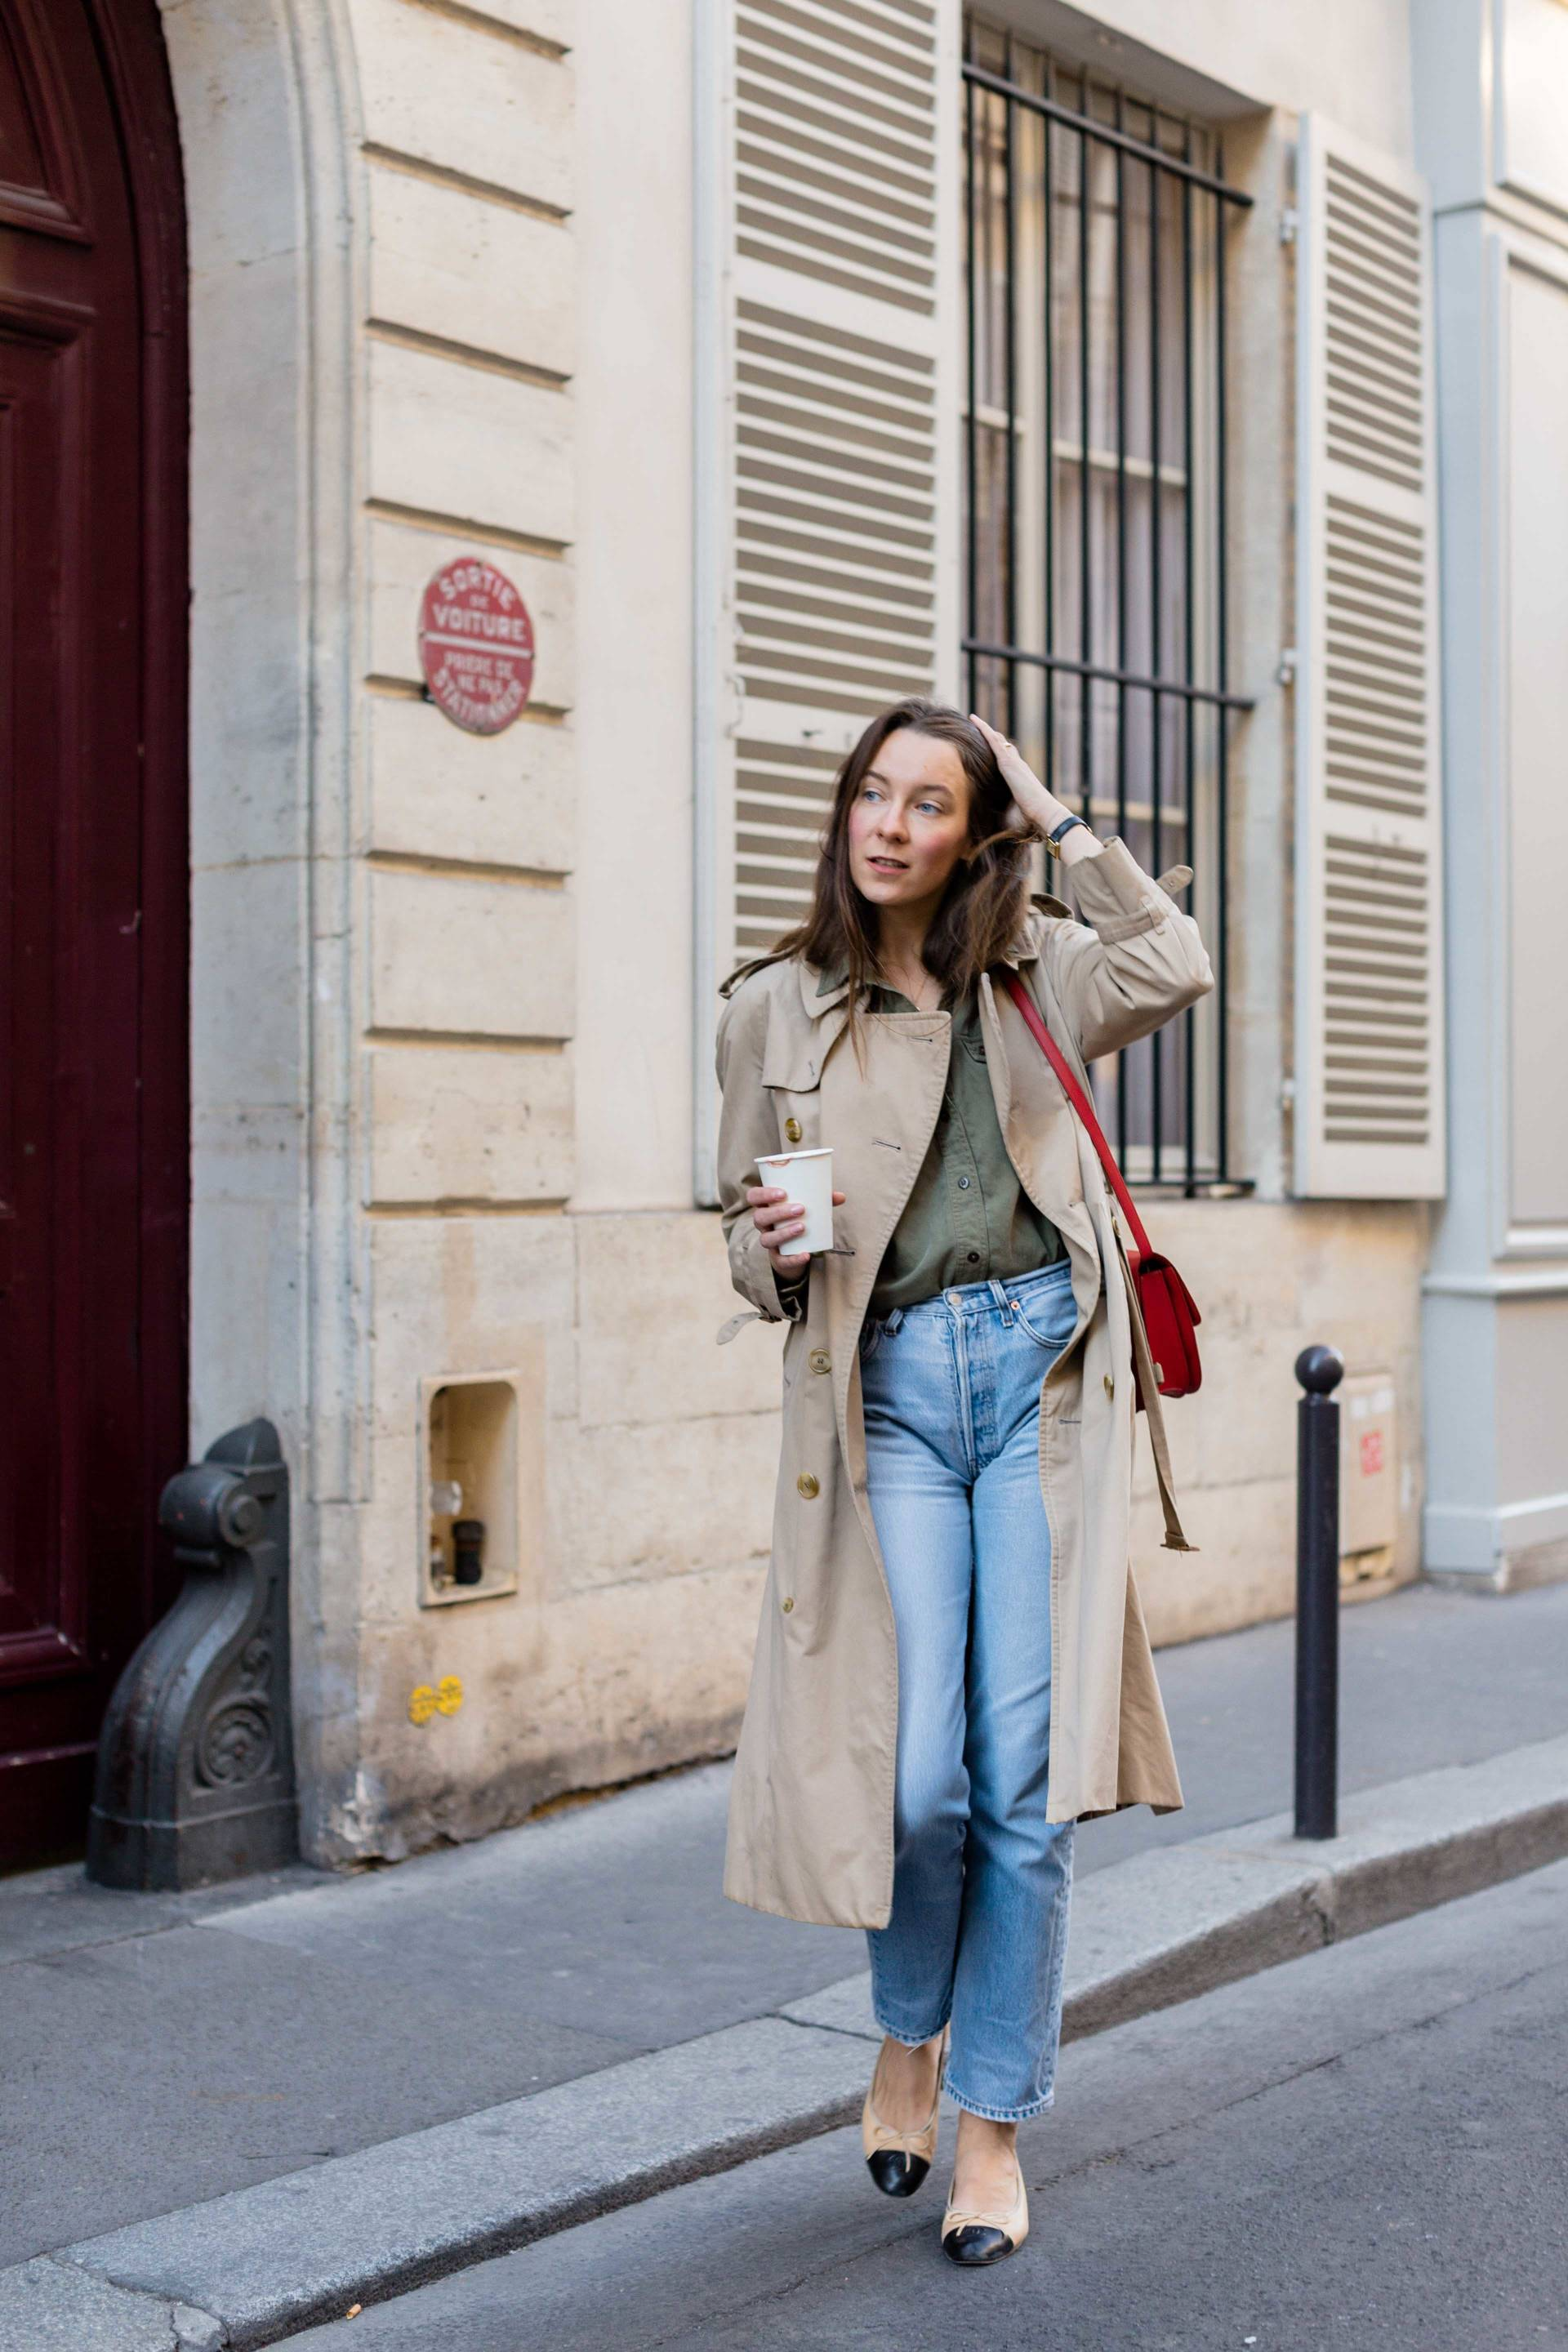 ari_paris_red_celinebag_trench8